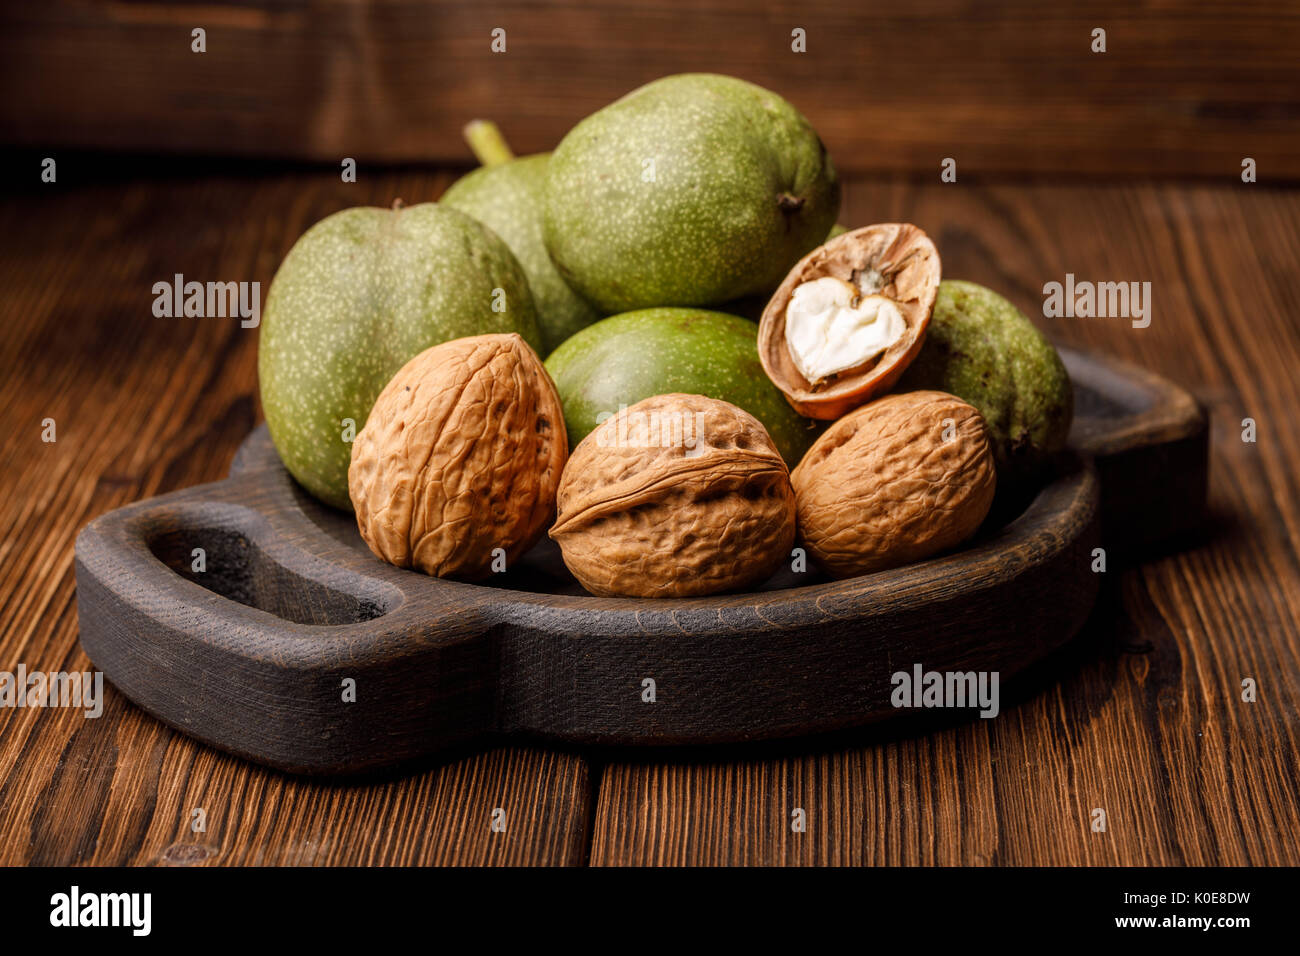 Fresh harvest of walnuts on a wooden background. Green and brown nuts on a beautiful wooden plate. Shell and peel of walnuts. Macro. - Stock Image